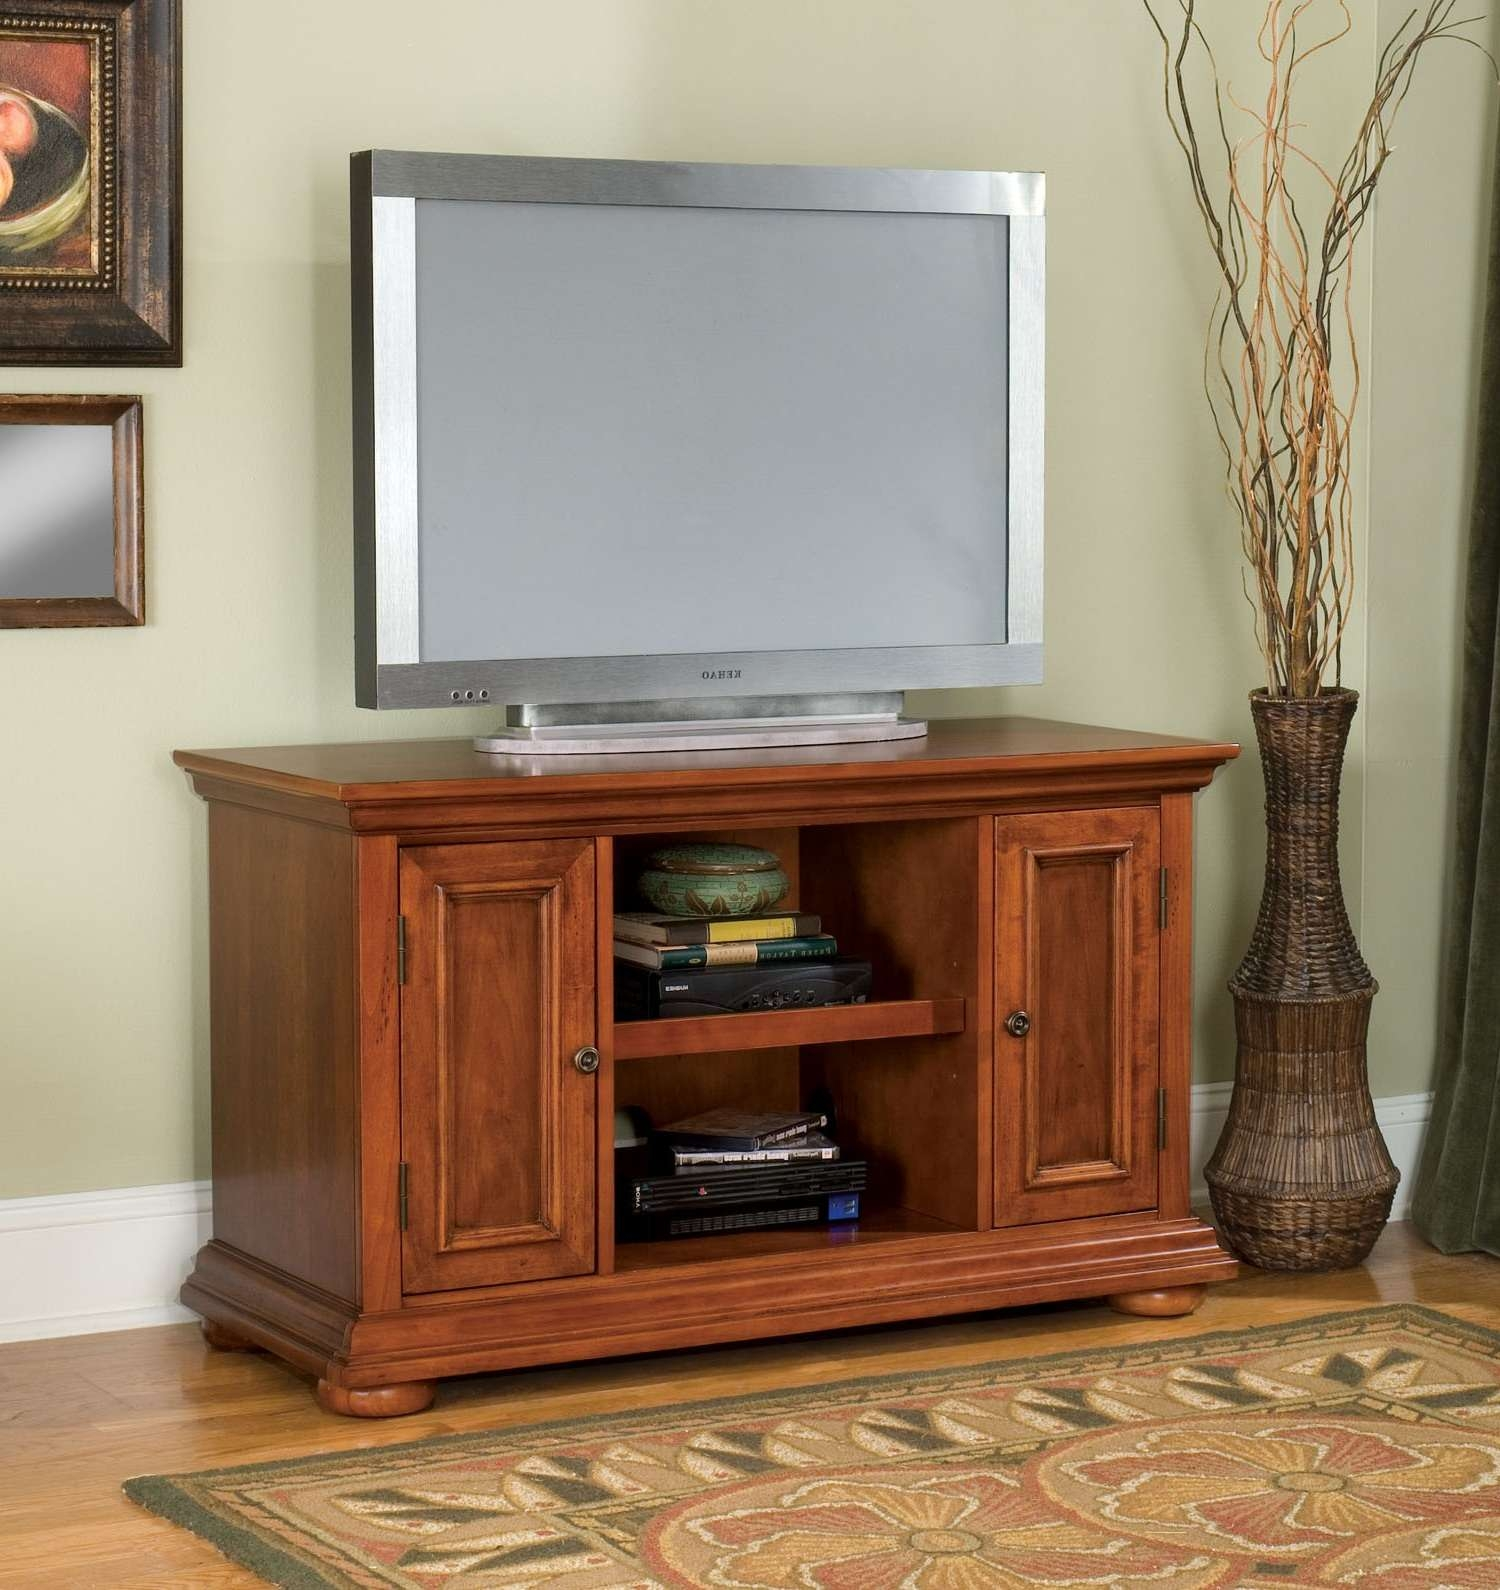 Rectangle Reverse Knife Edge Profile Cherry Wood Tv Cabinet Stand Pertaining To Cherry Wood Tv Cabinets (View 15 of 20)